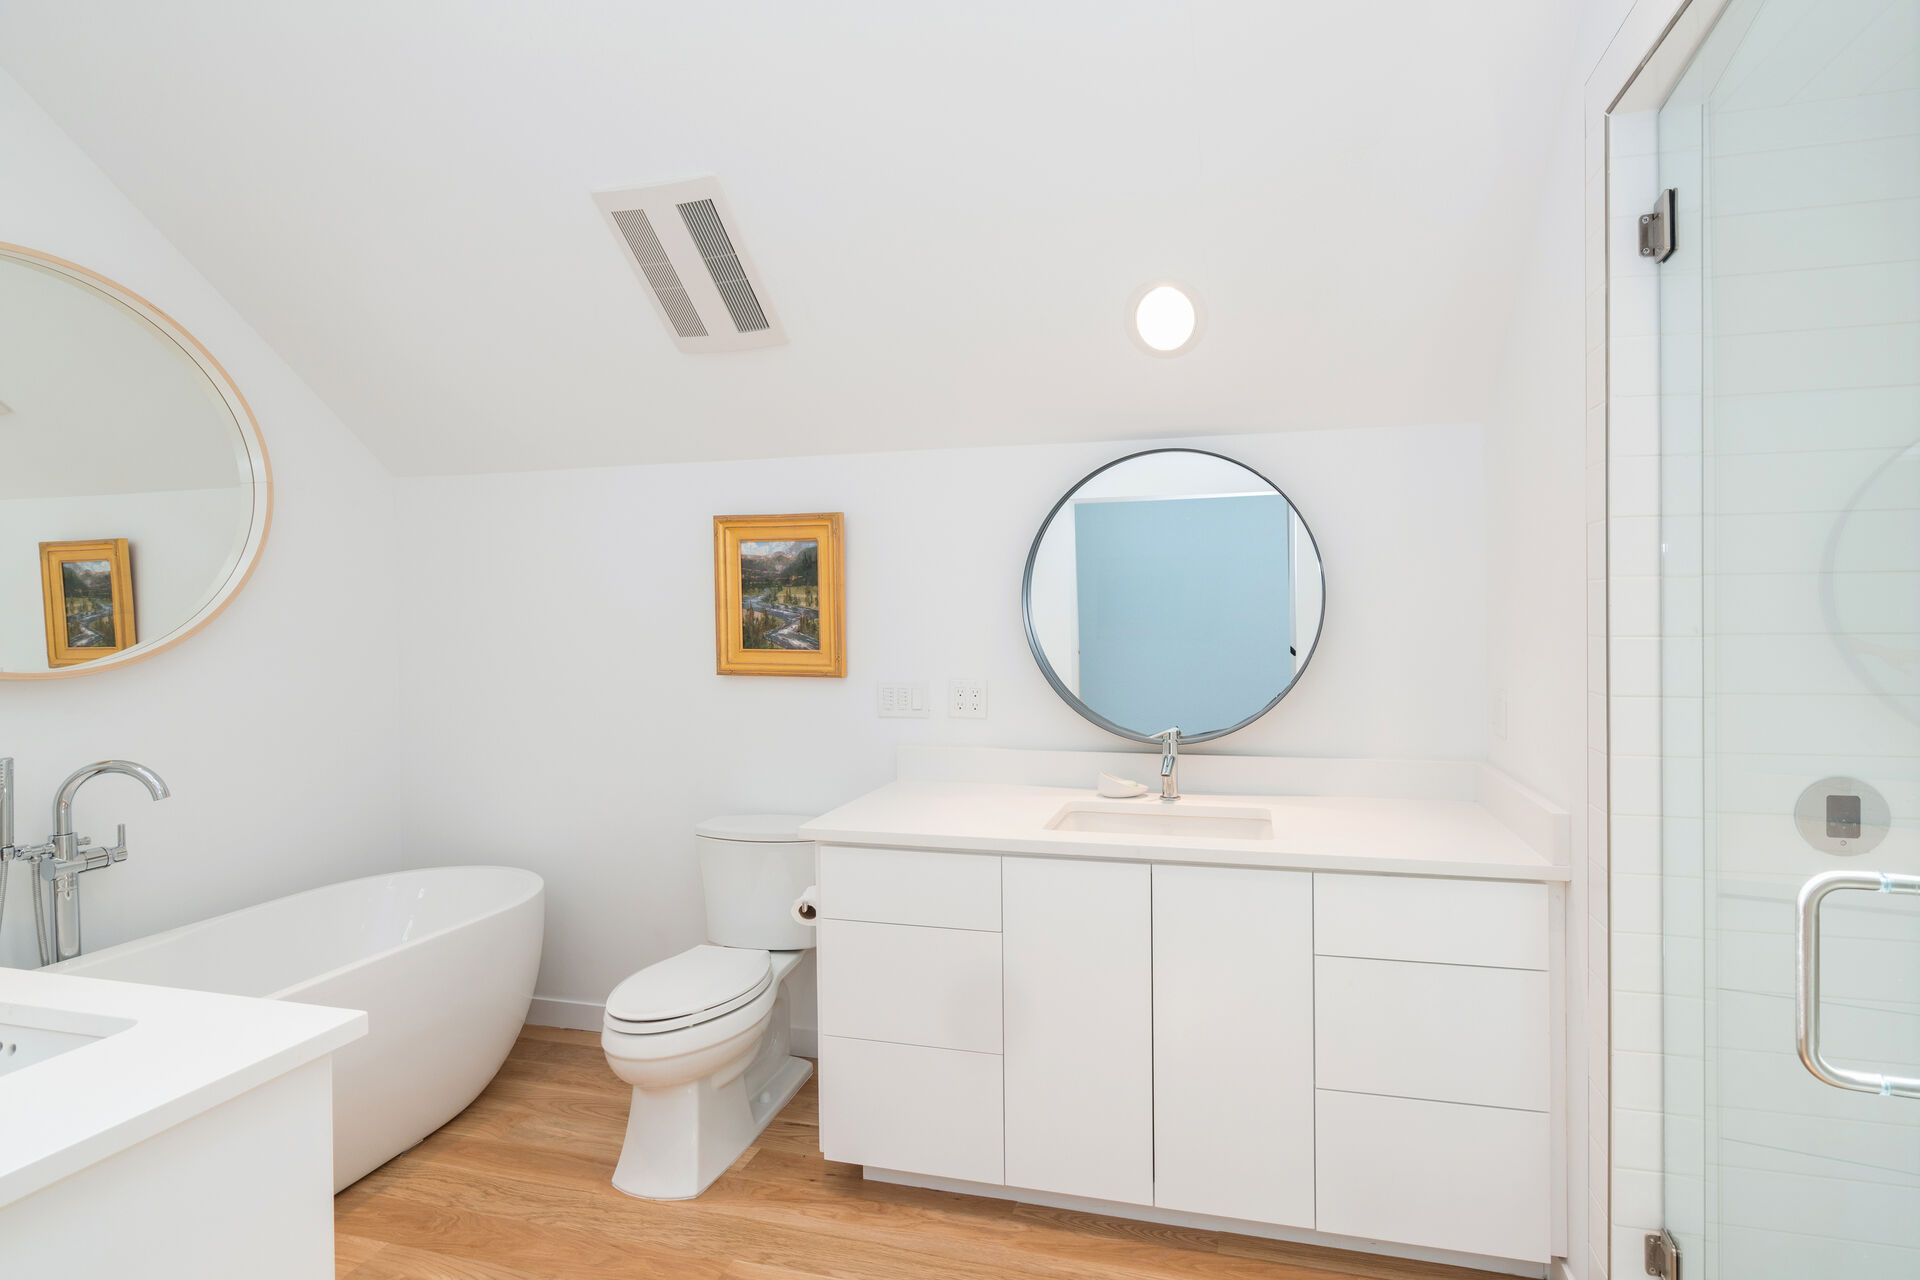 Full Bathroom with Soaking Tub and Separate Walk-in Shower